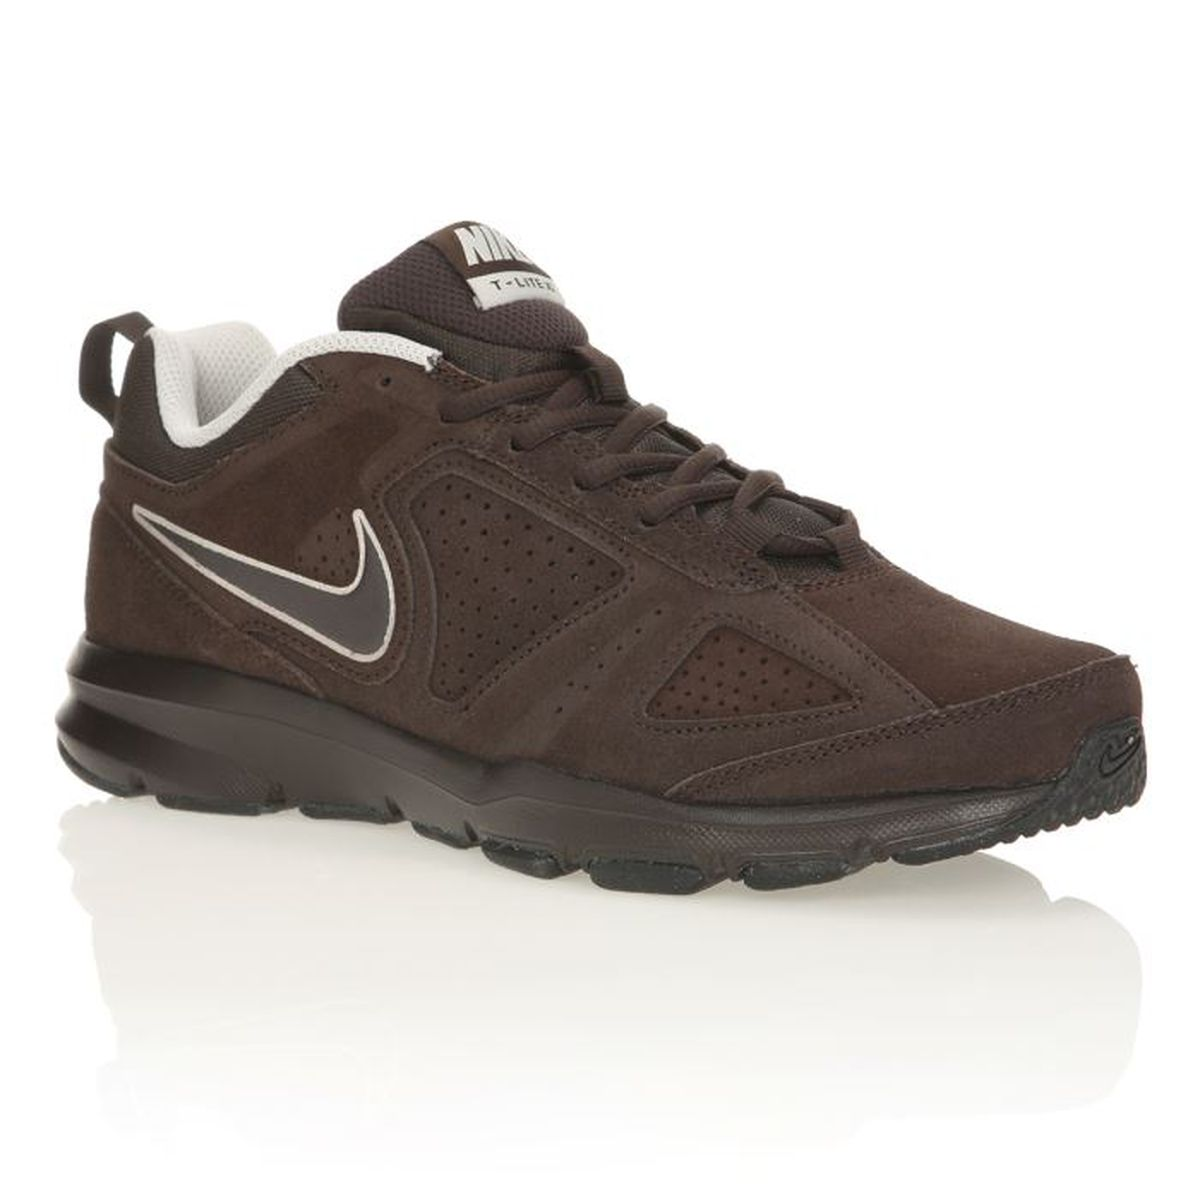 NIKE Chaussures sportswear T lite XI Homme Marron Achat